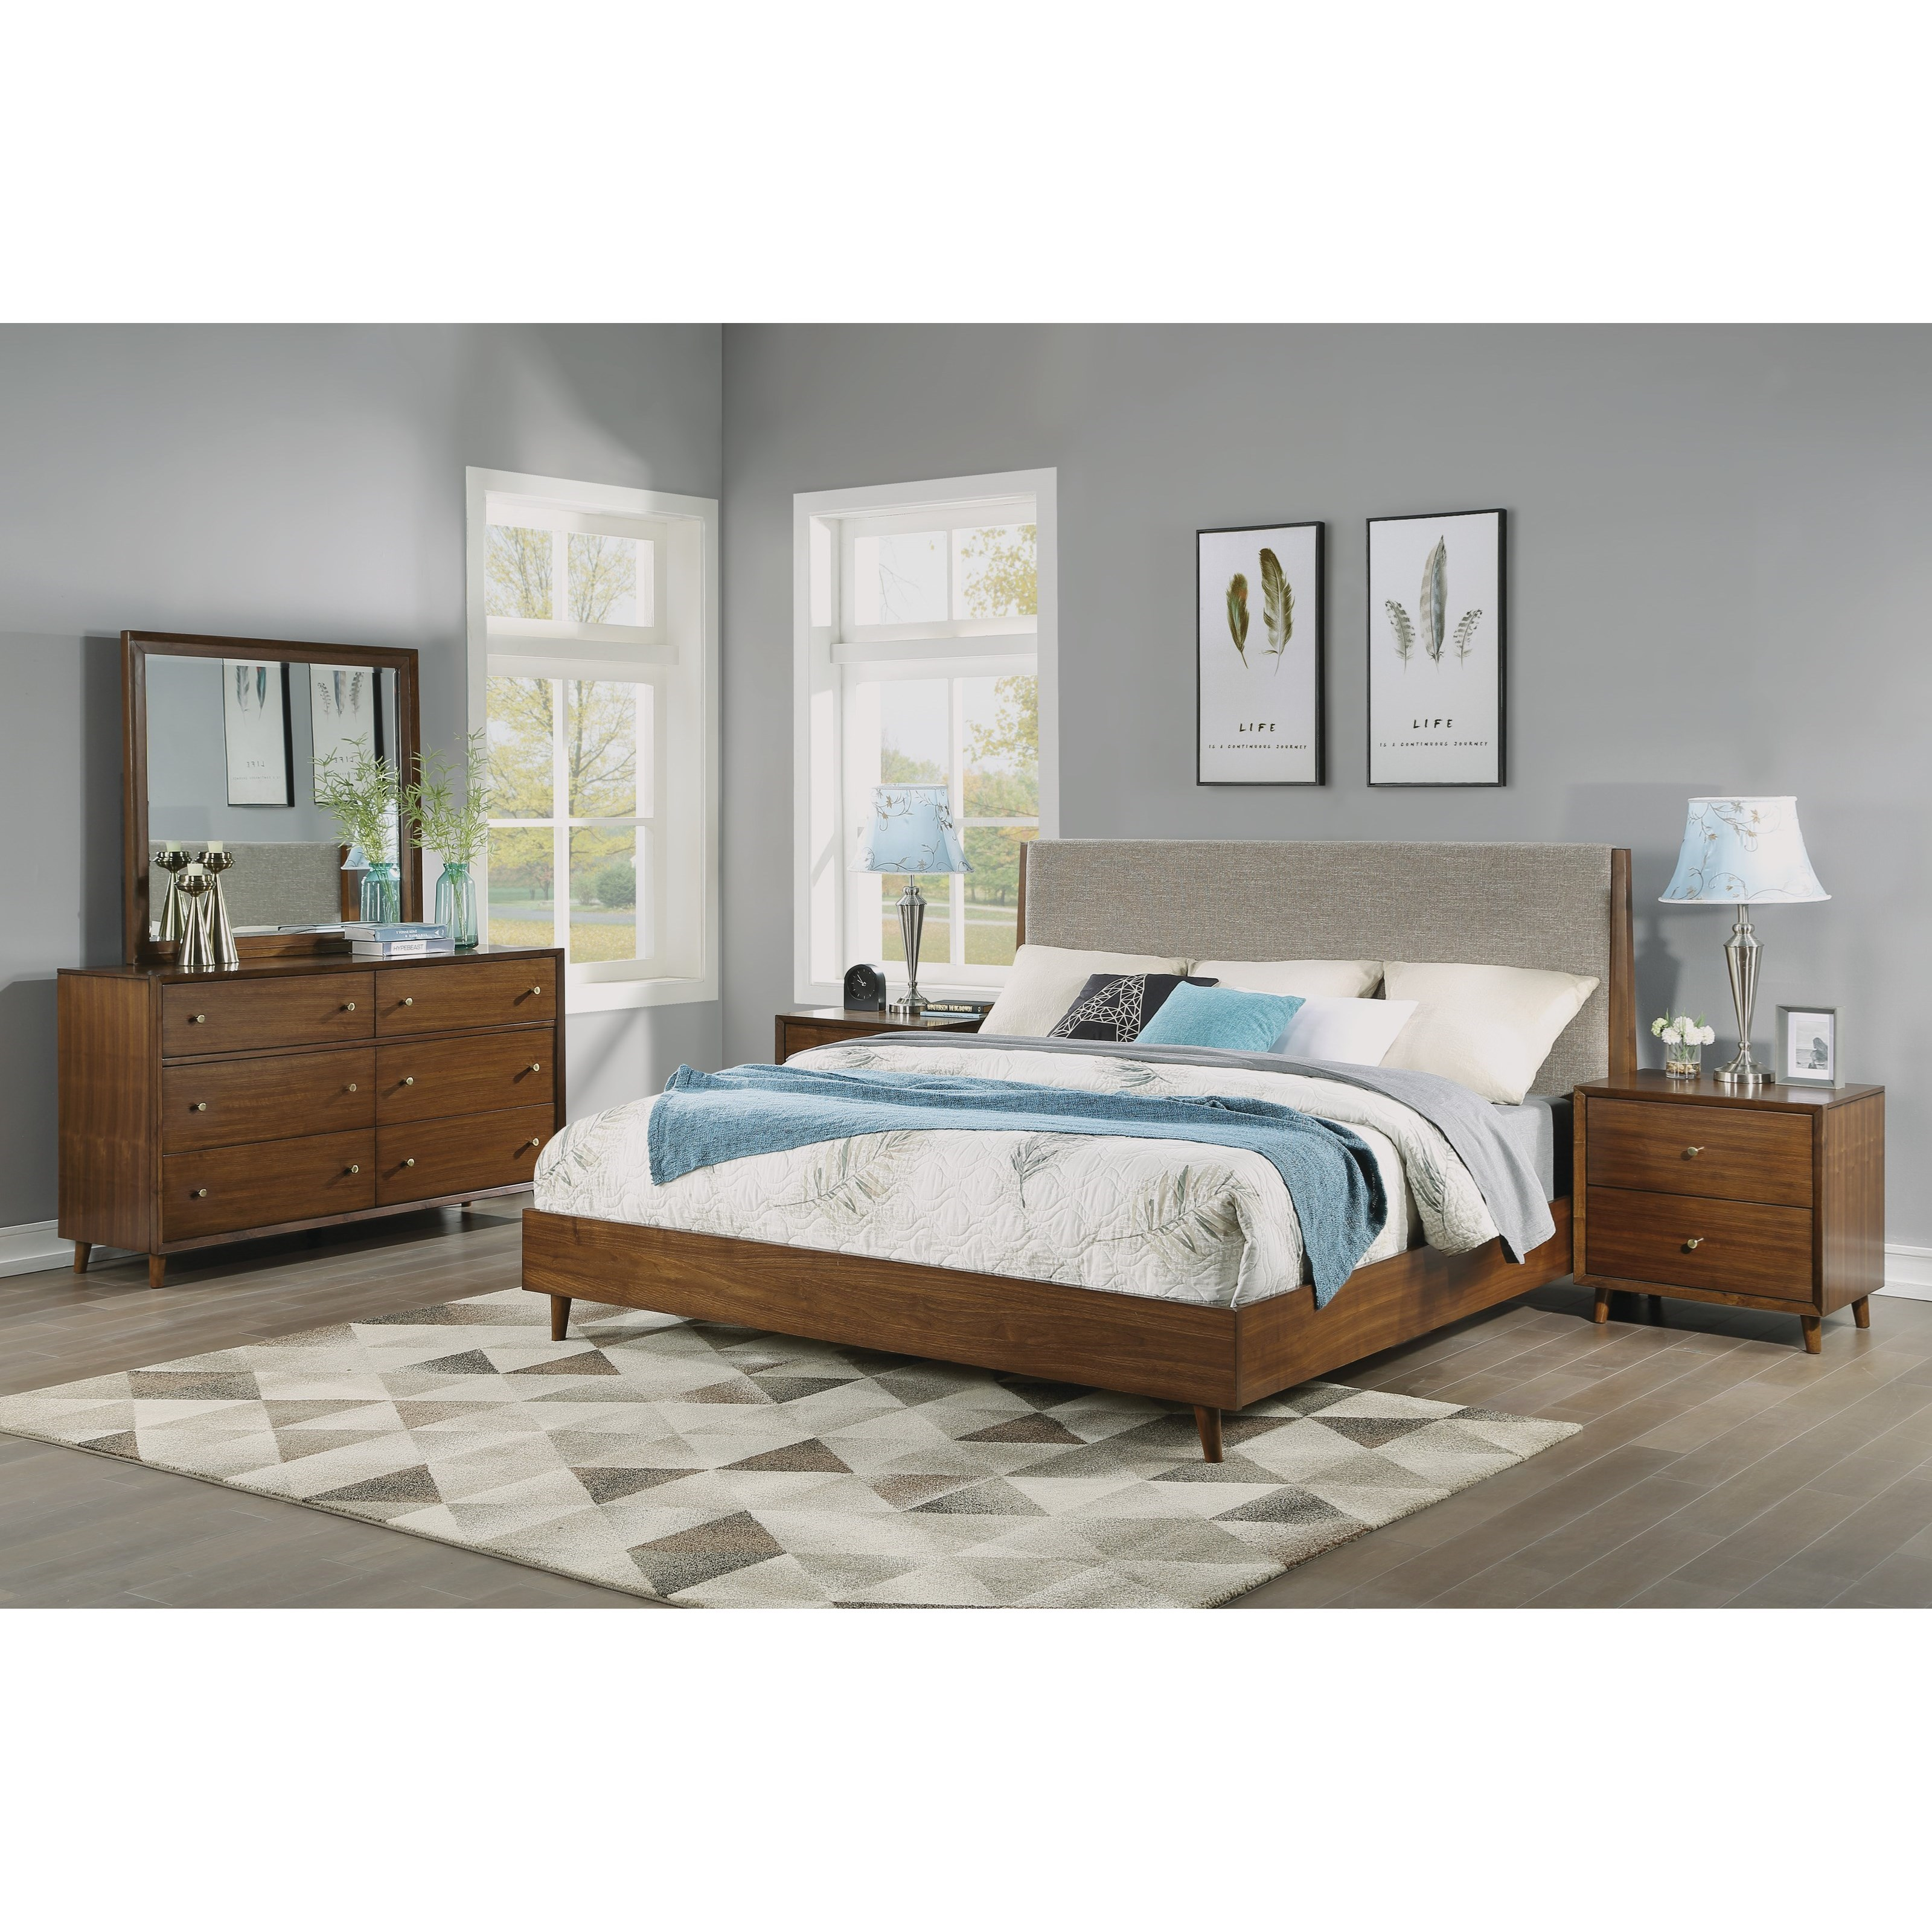 Ludwig King Bedroom Group by Flexsteel Wynwood Collection at Home Collections Furniture